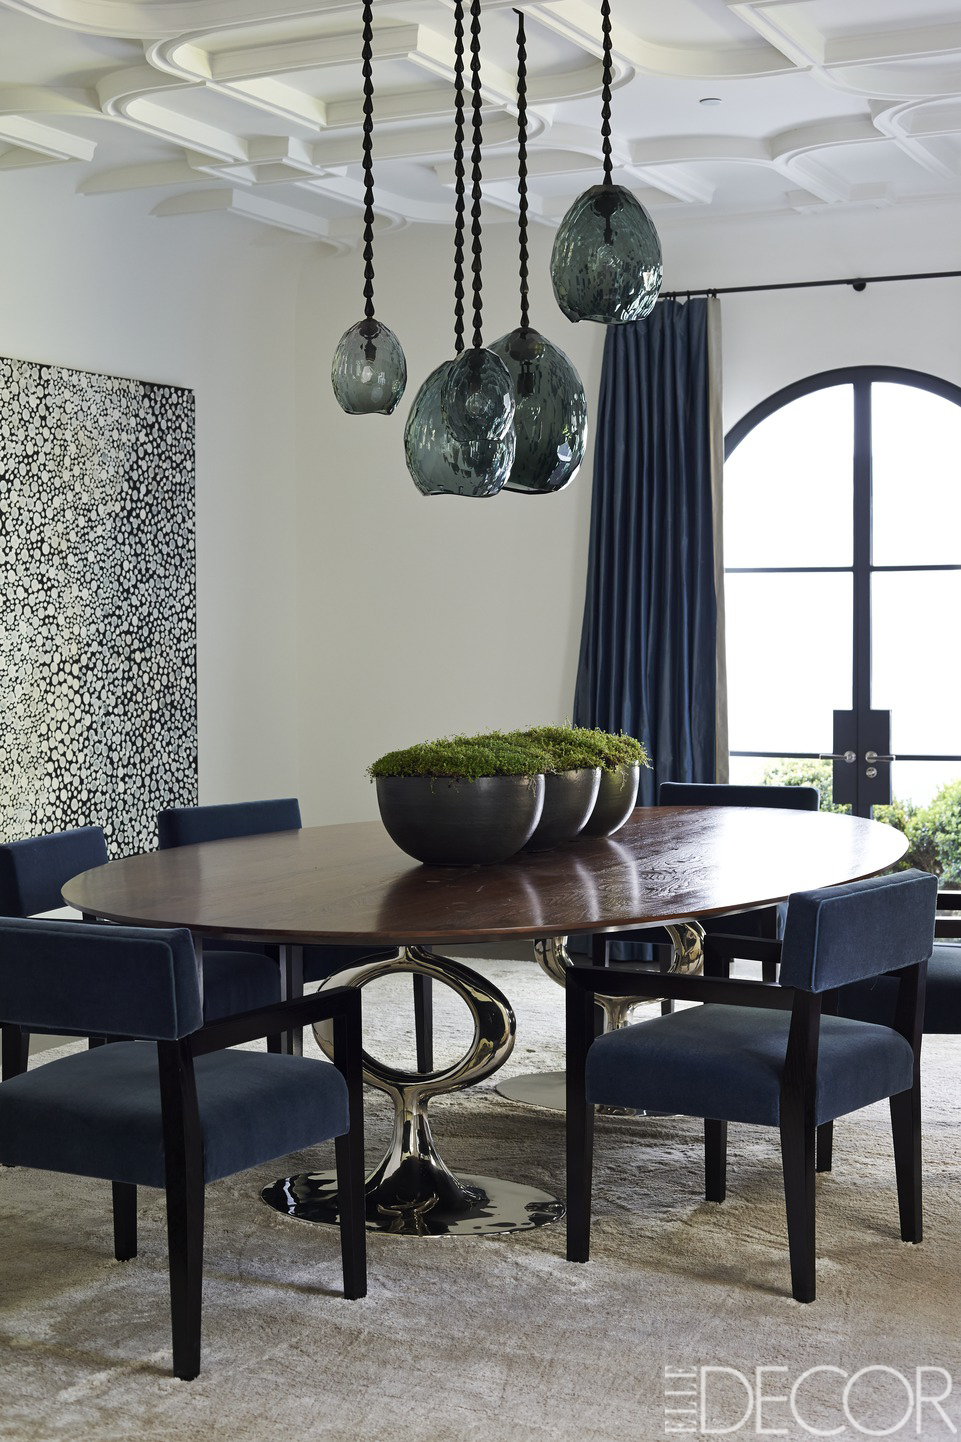 10 Dining Room Ideas to Inspire Yourself by Elle Décor 8 Dining Room Ideas 10 Dining Room Ideas to Inspire Yourself by Elle Décor 10 Dining Room Ideas to Inspire Yourself by Elle D  cor 8